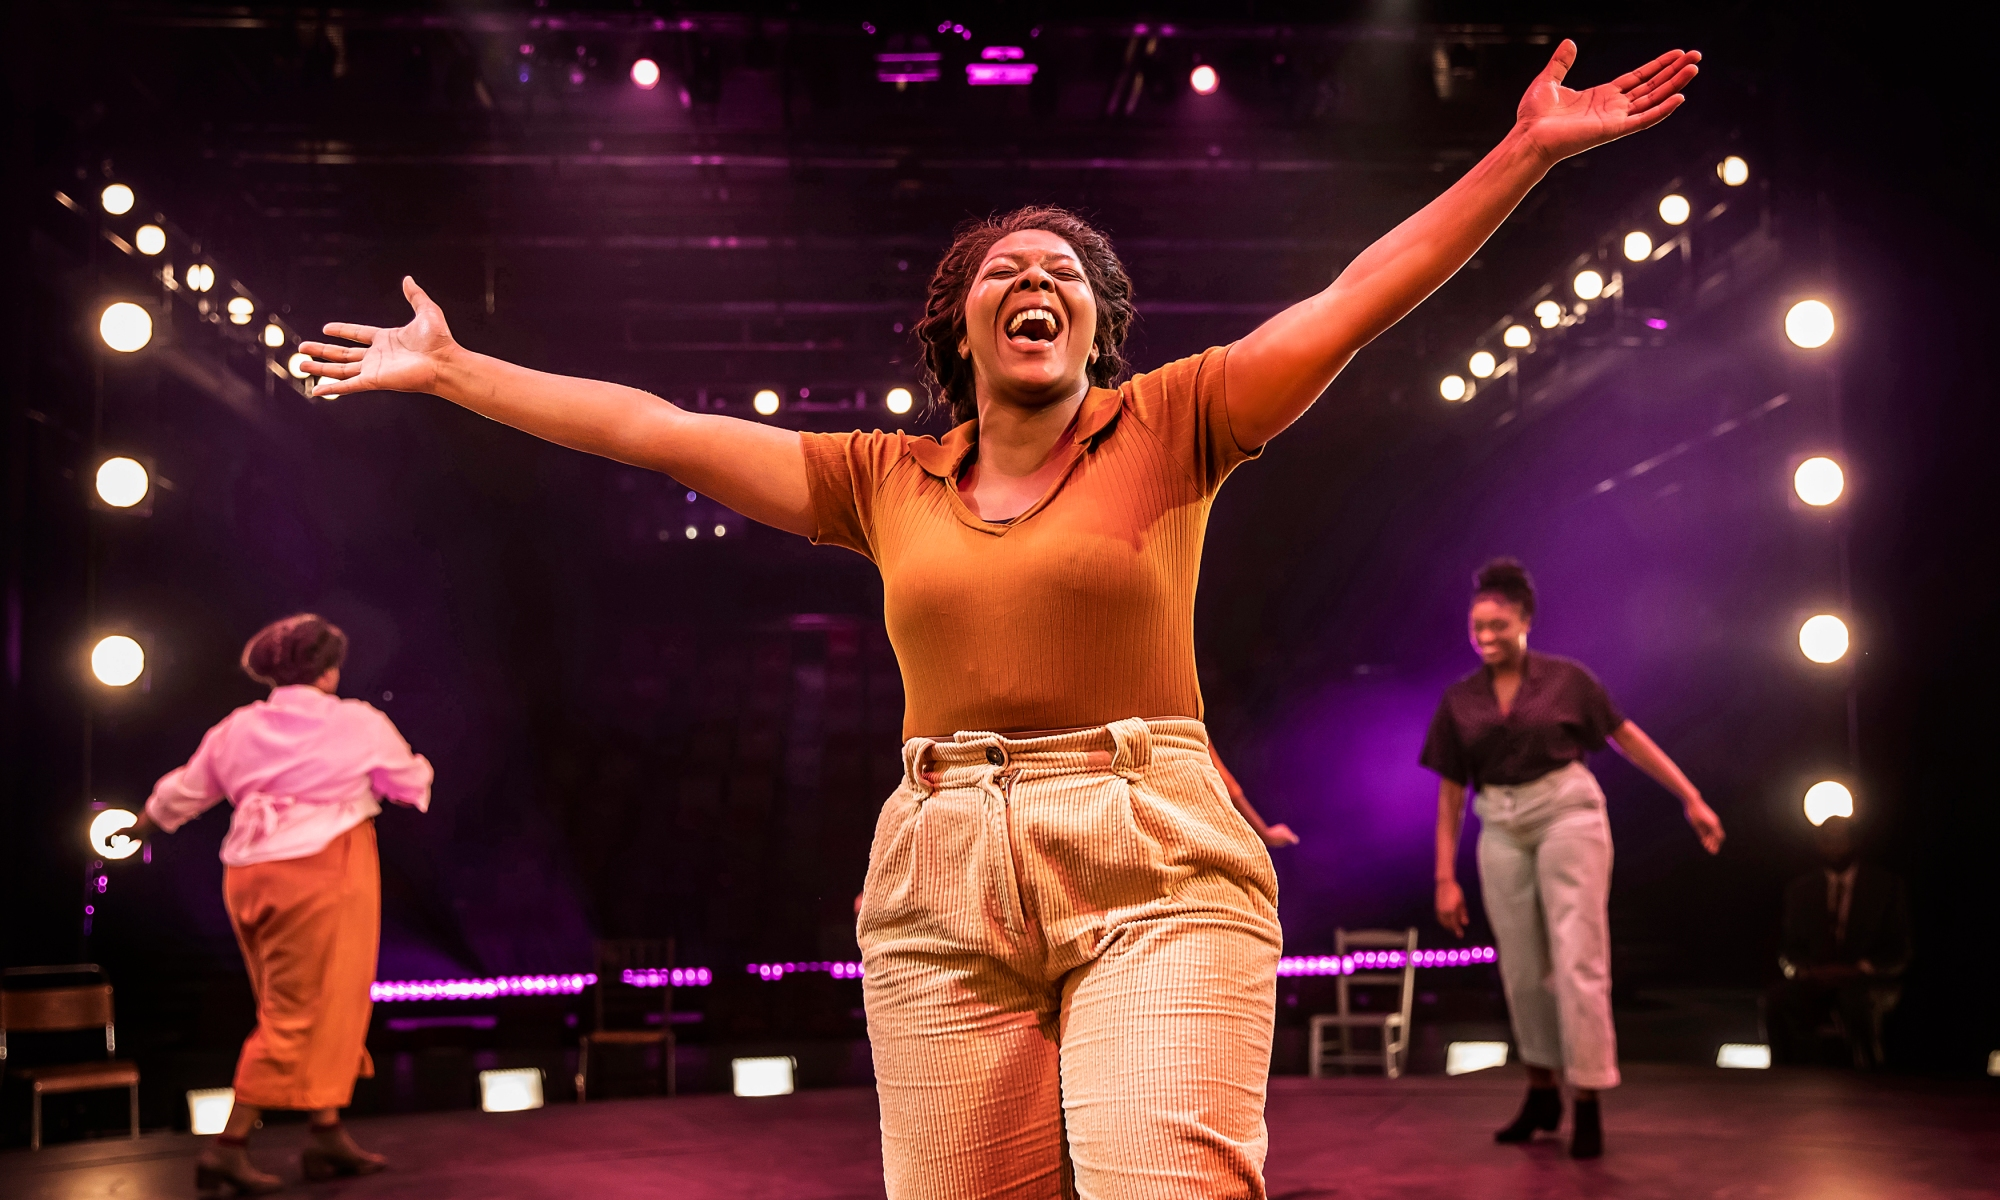 T'Shan Williams, a black woman, stands on stage in a brown top and white trousers. She is singing, smiling, with her arms outstretched.